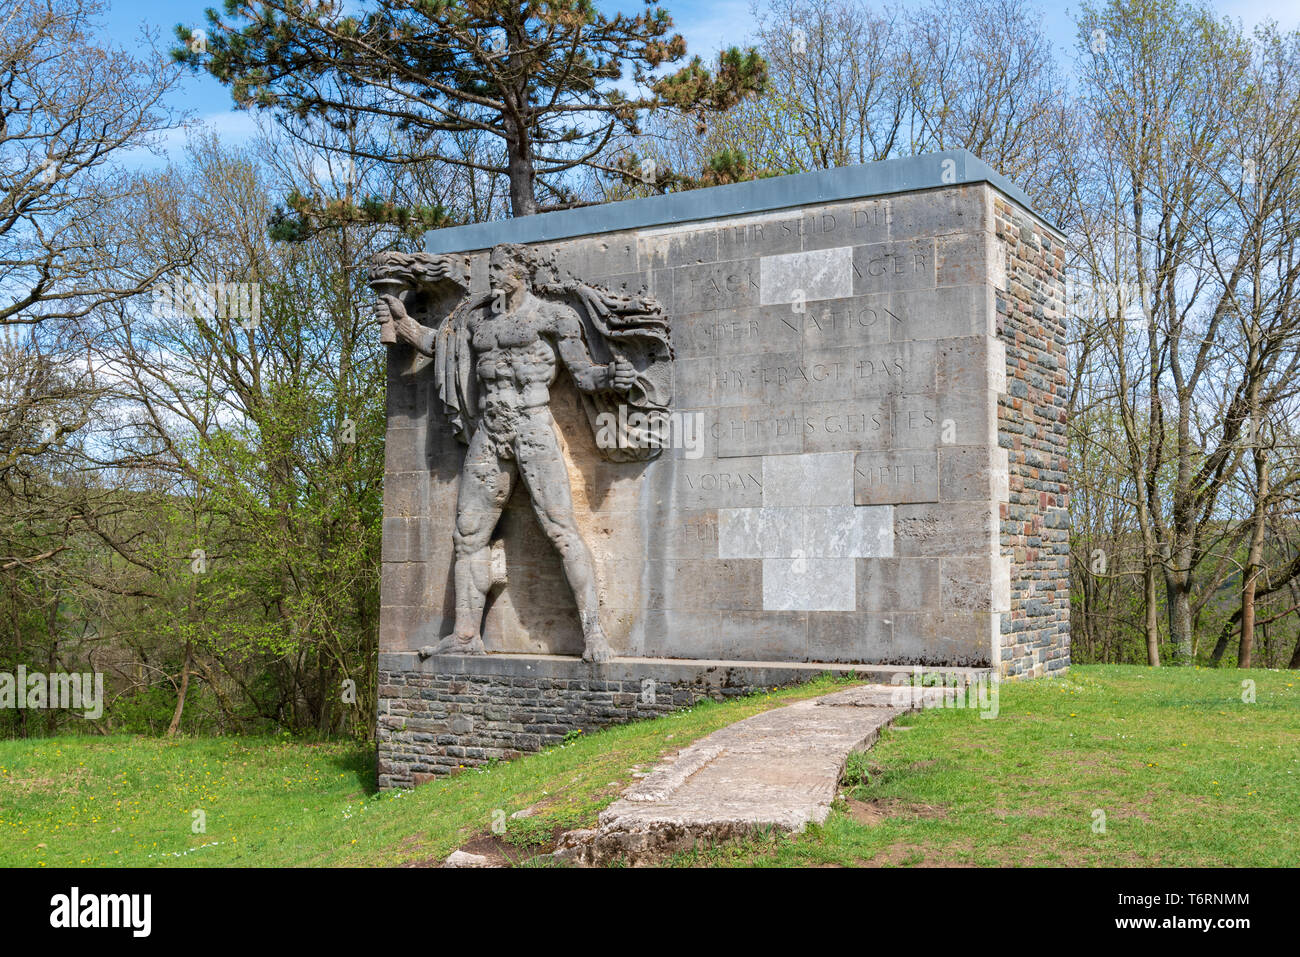 Nazi statue of a torchbearer at Vogelsang College, Eifel, Germany - Stock Image